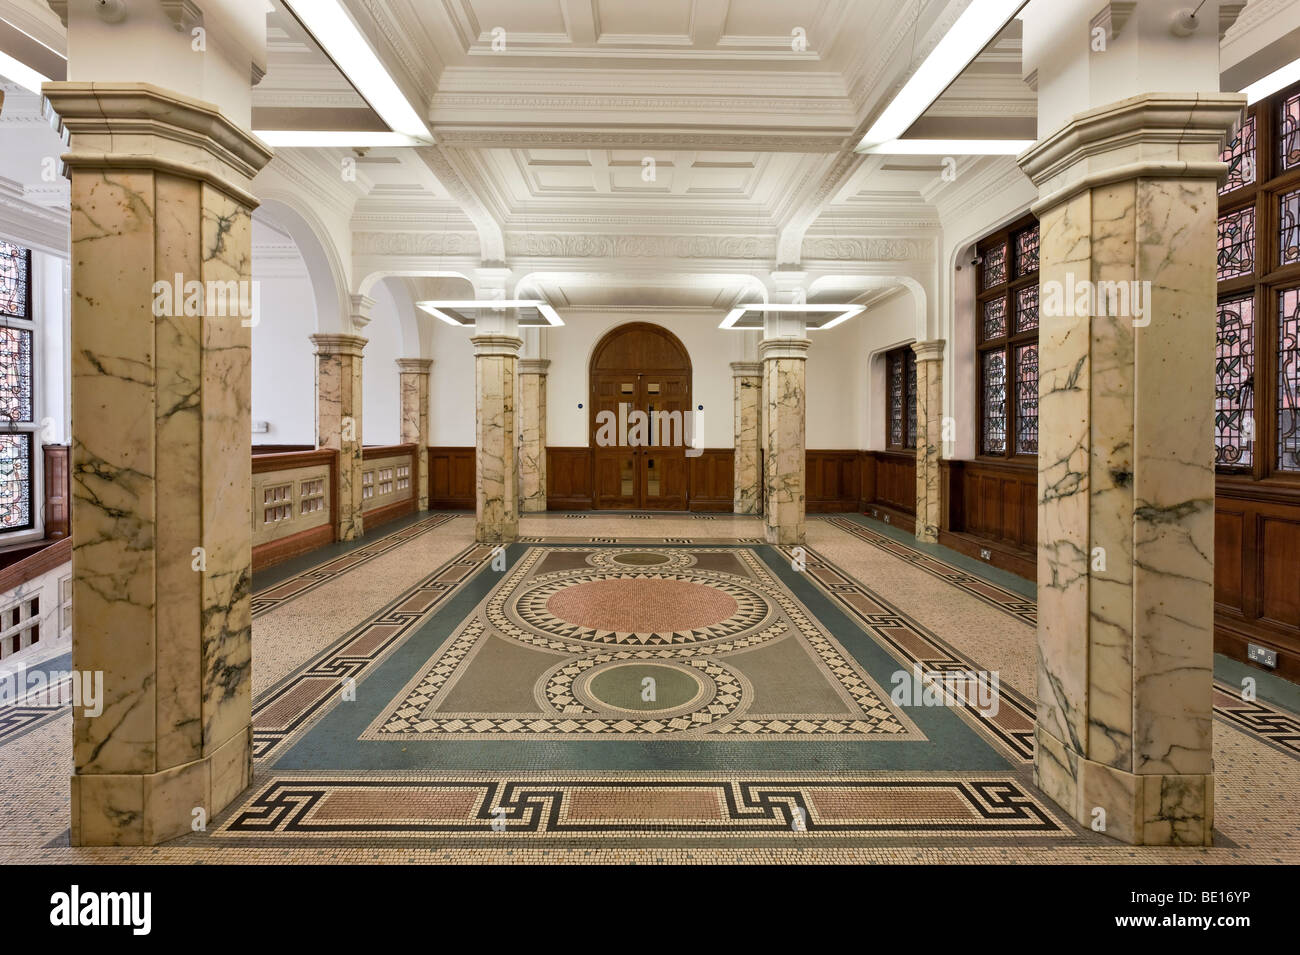 Royal Institution of Chartered Surveyors Headquarters in Westminster, London. - Stock Image